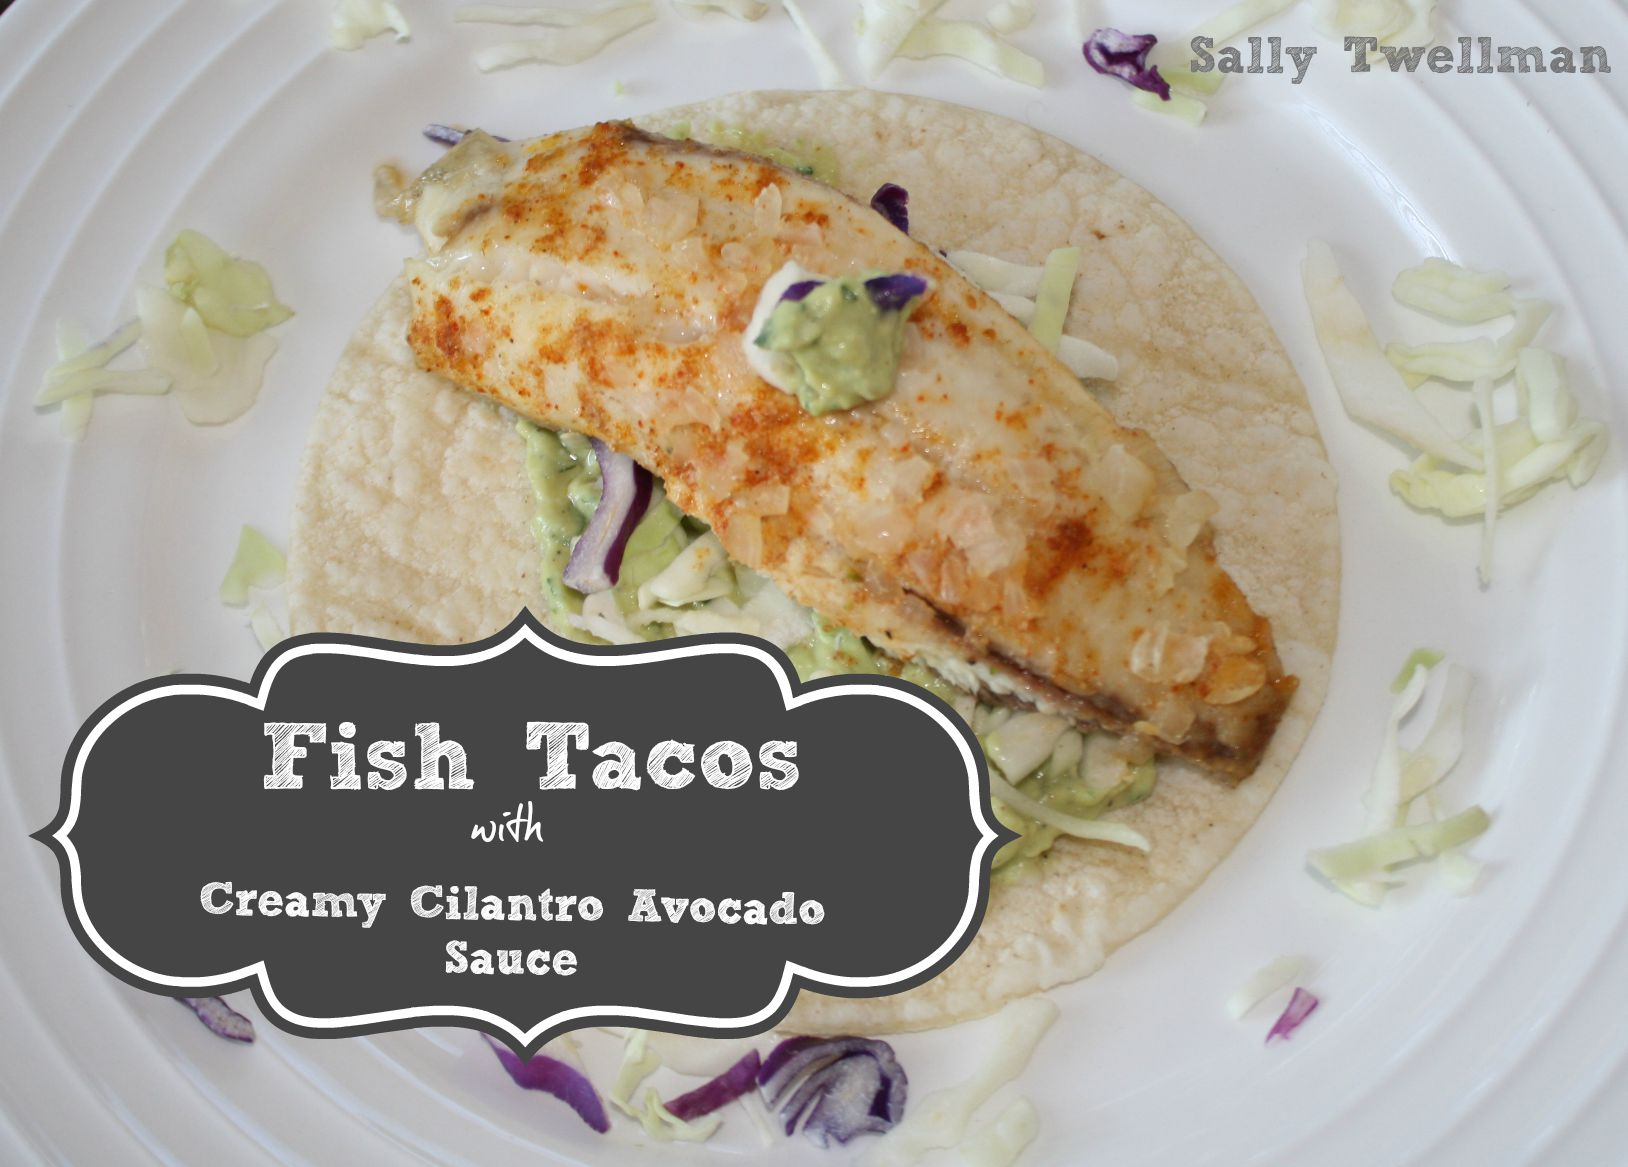 Fish tacos with creamy cilantro avocado sauce for Sides for fish tacos